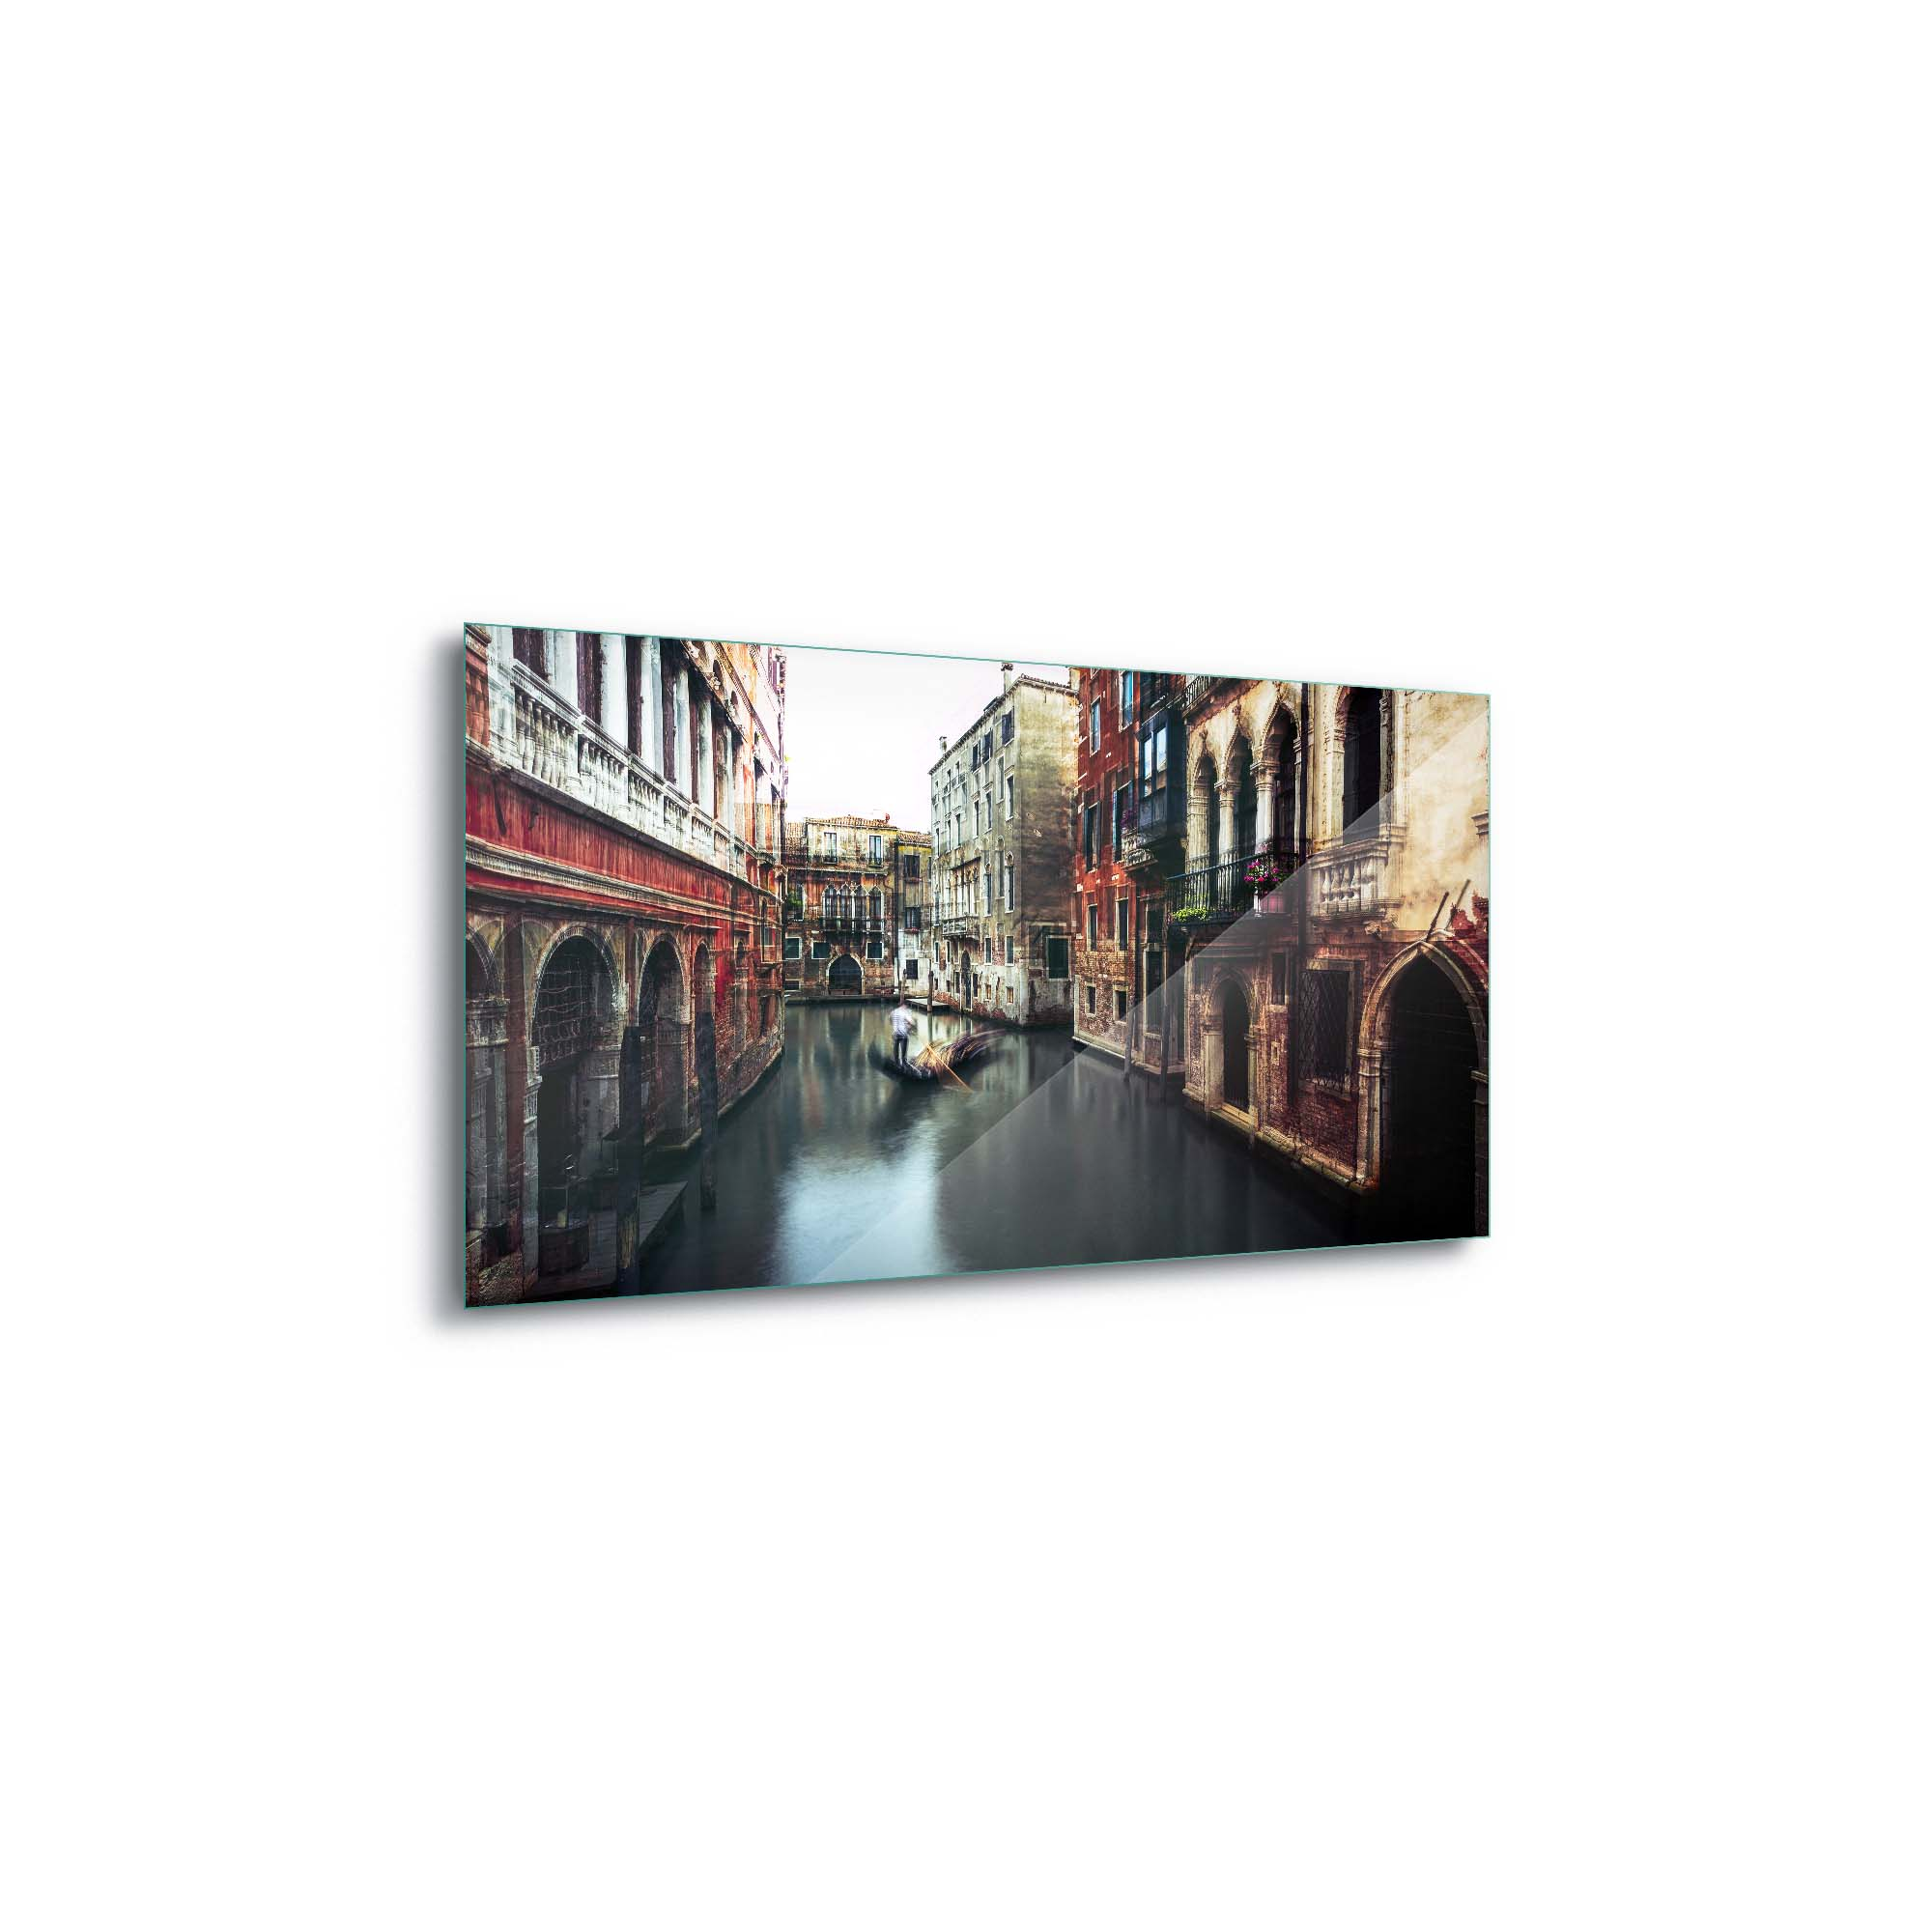 Glass printed Houses in Venice